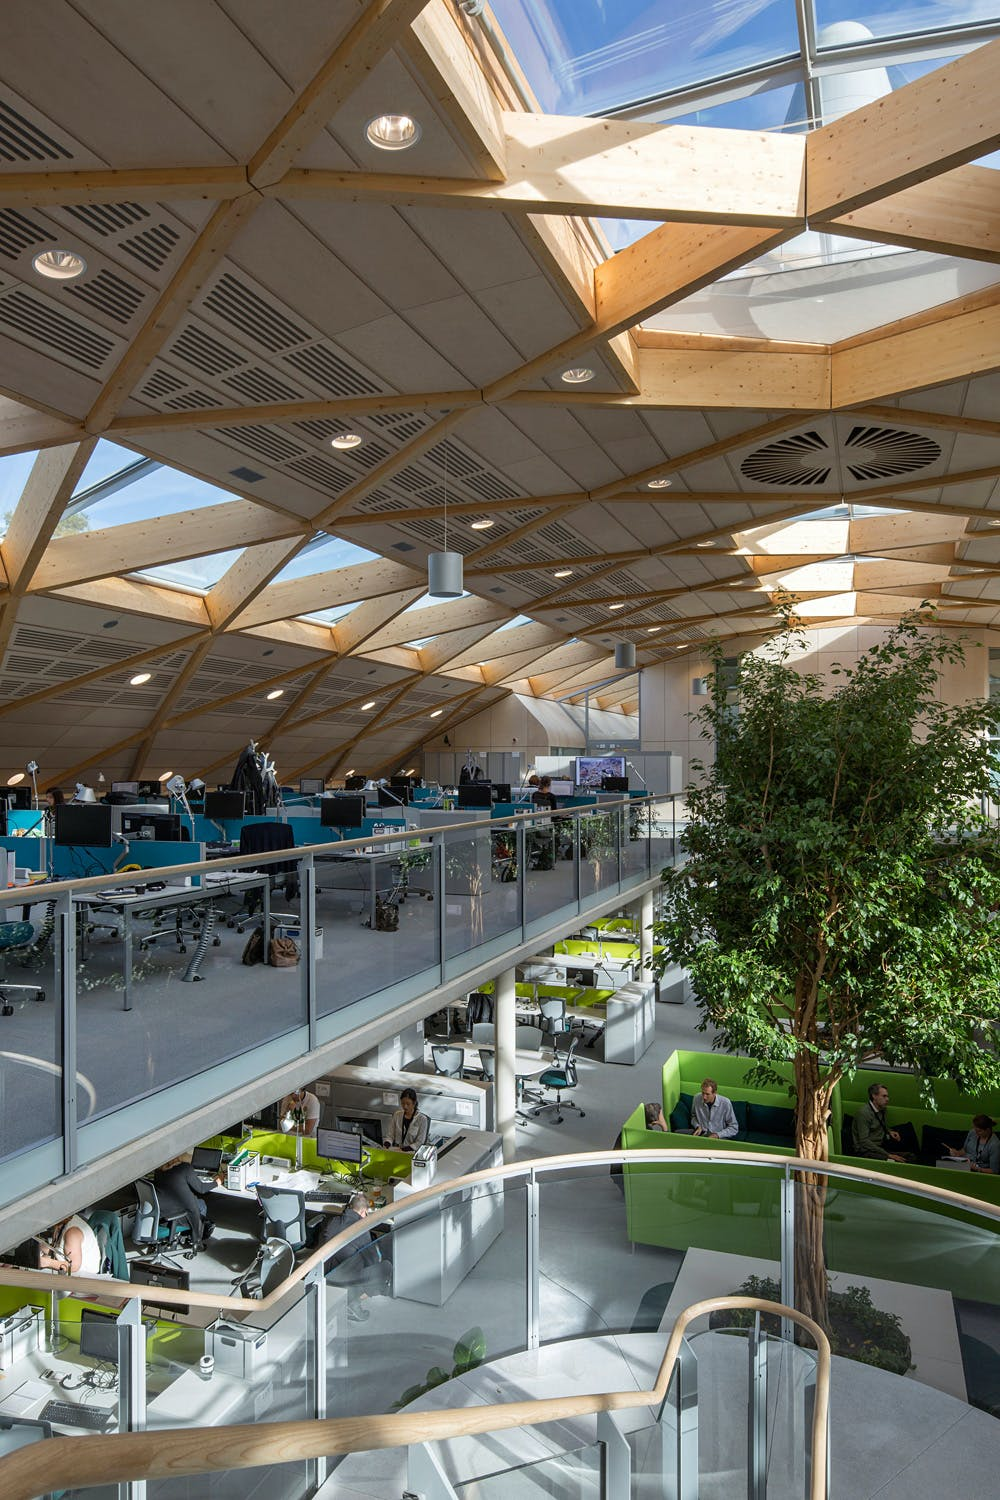 Shortlisted For Commercial Building Of The Year Hopkins Architects Partnership LLP Living Planet Centre